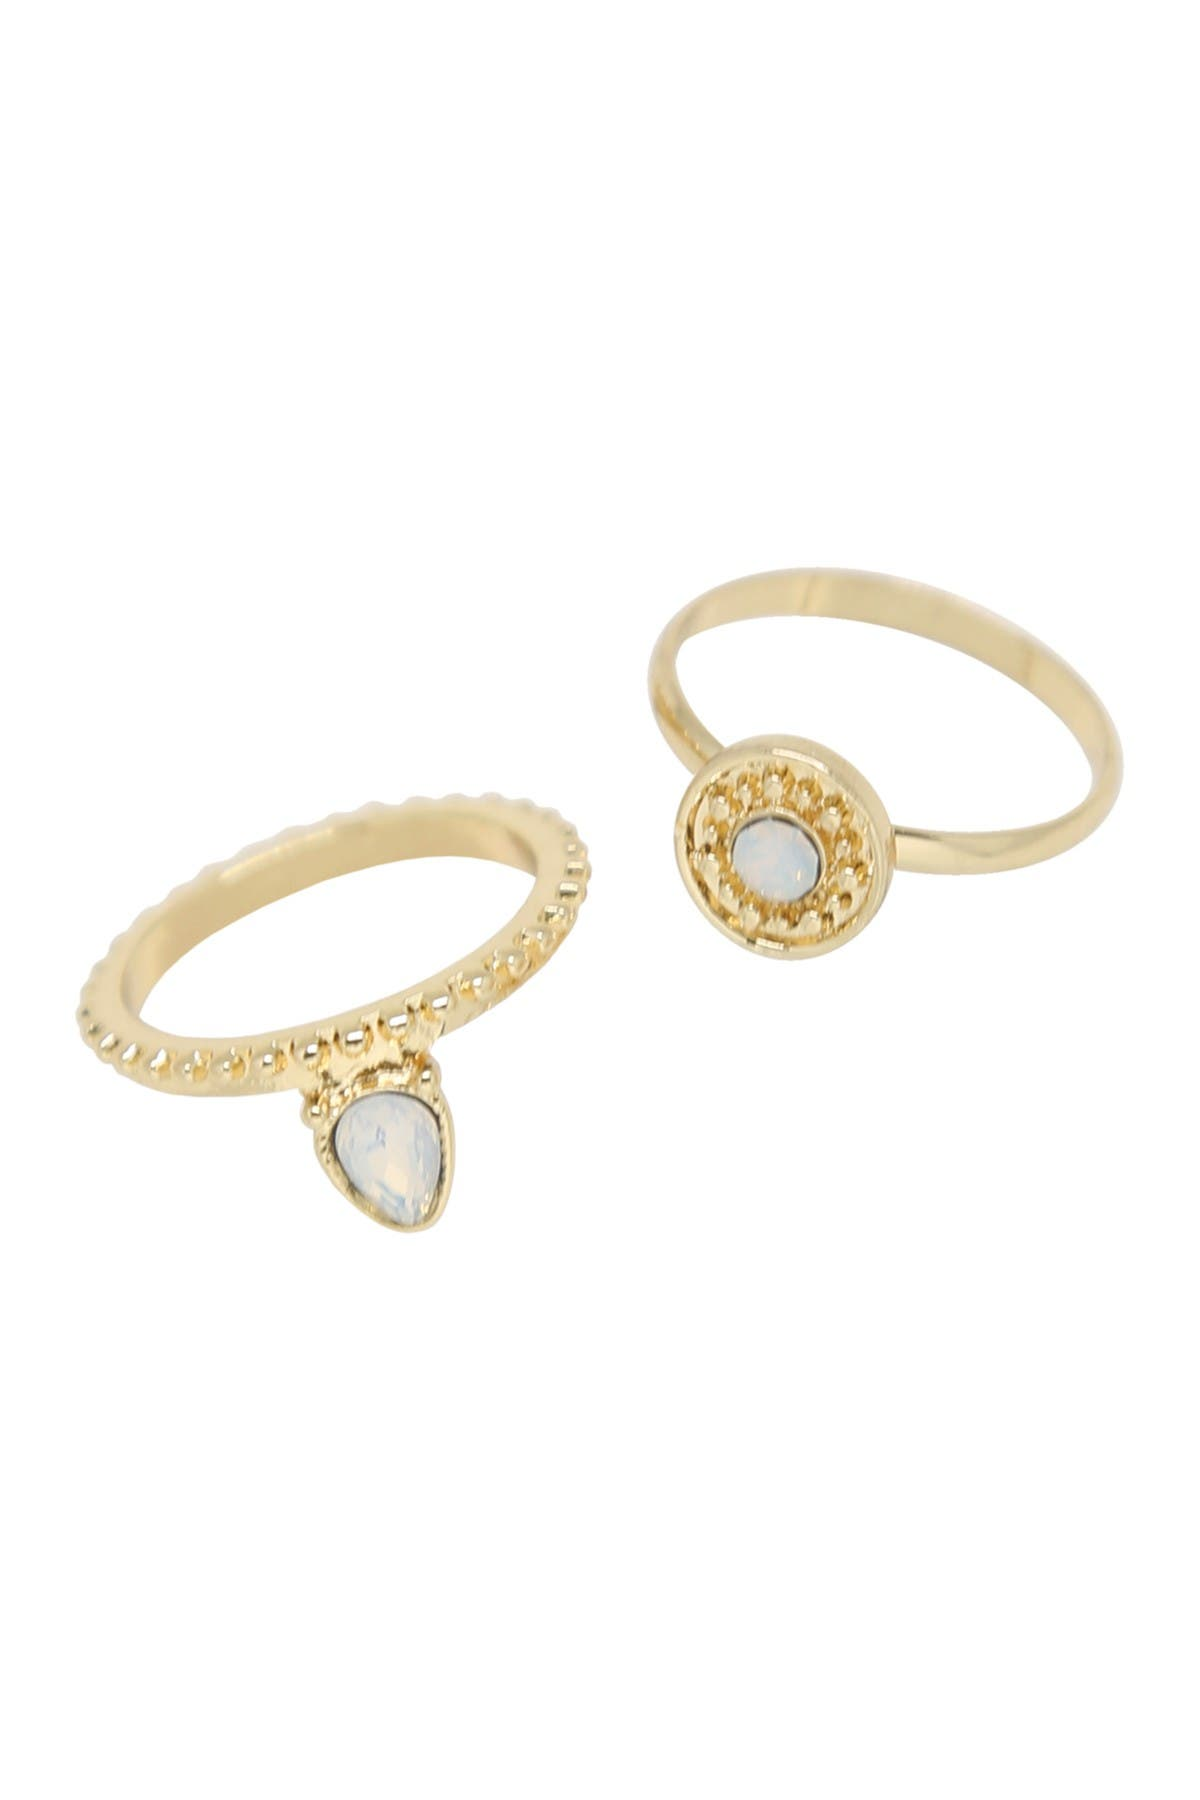 Image of Ettika Crystal Accent Ring - Set of 2